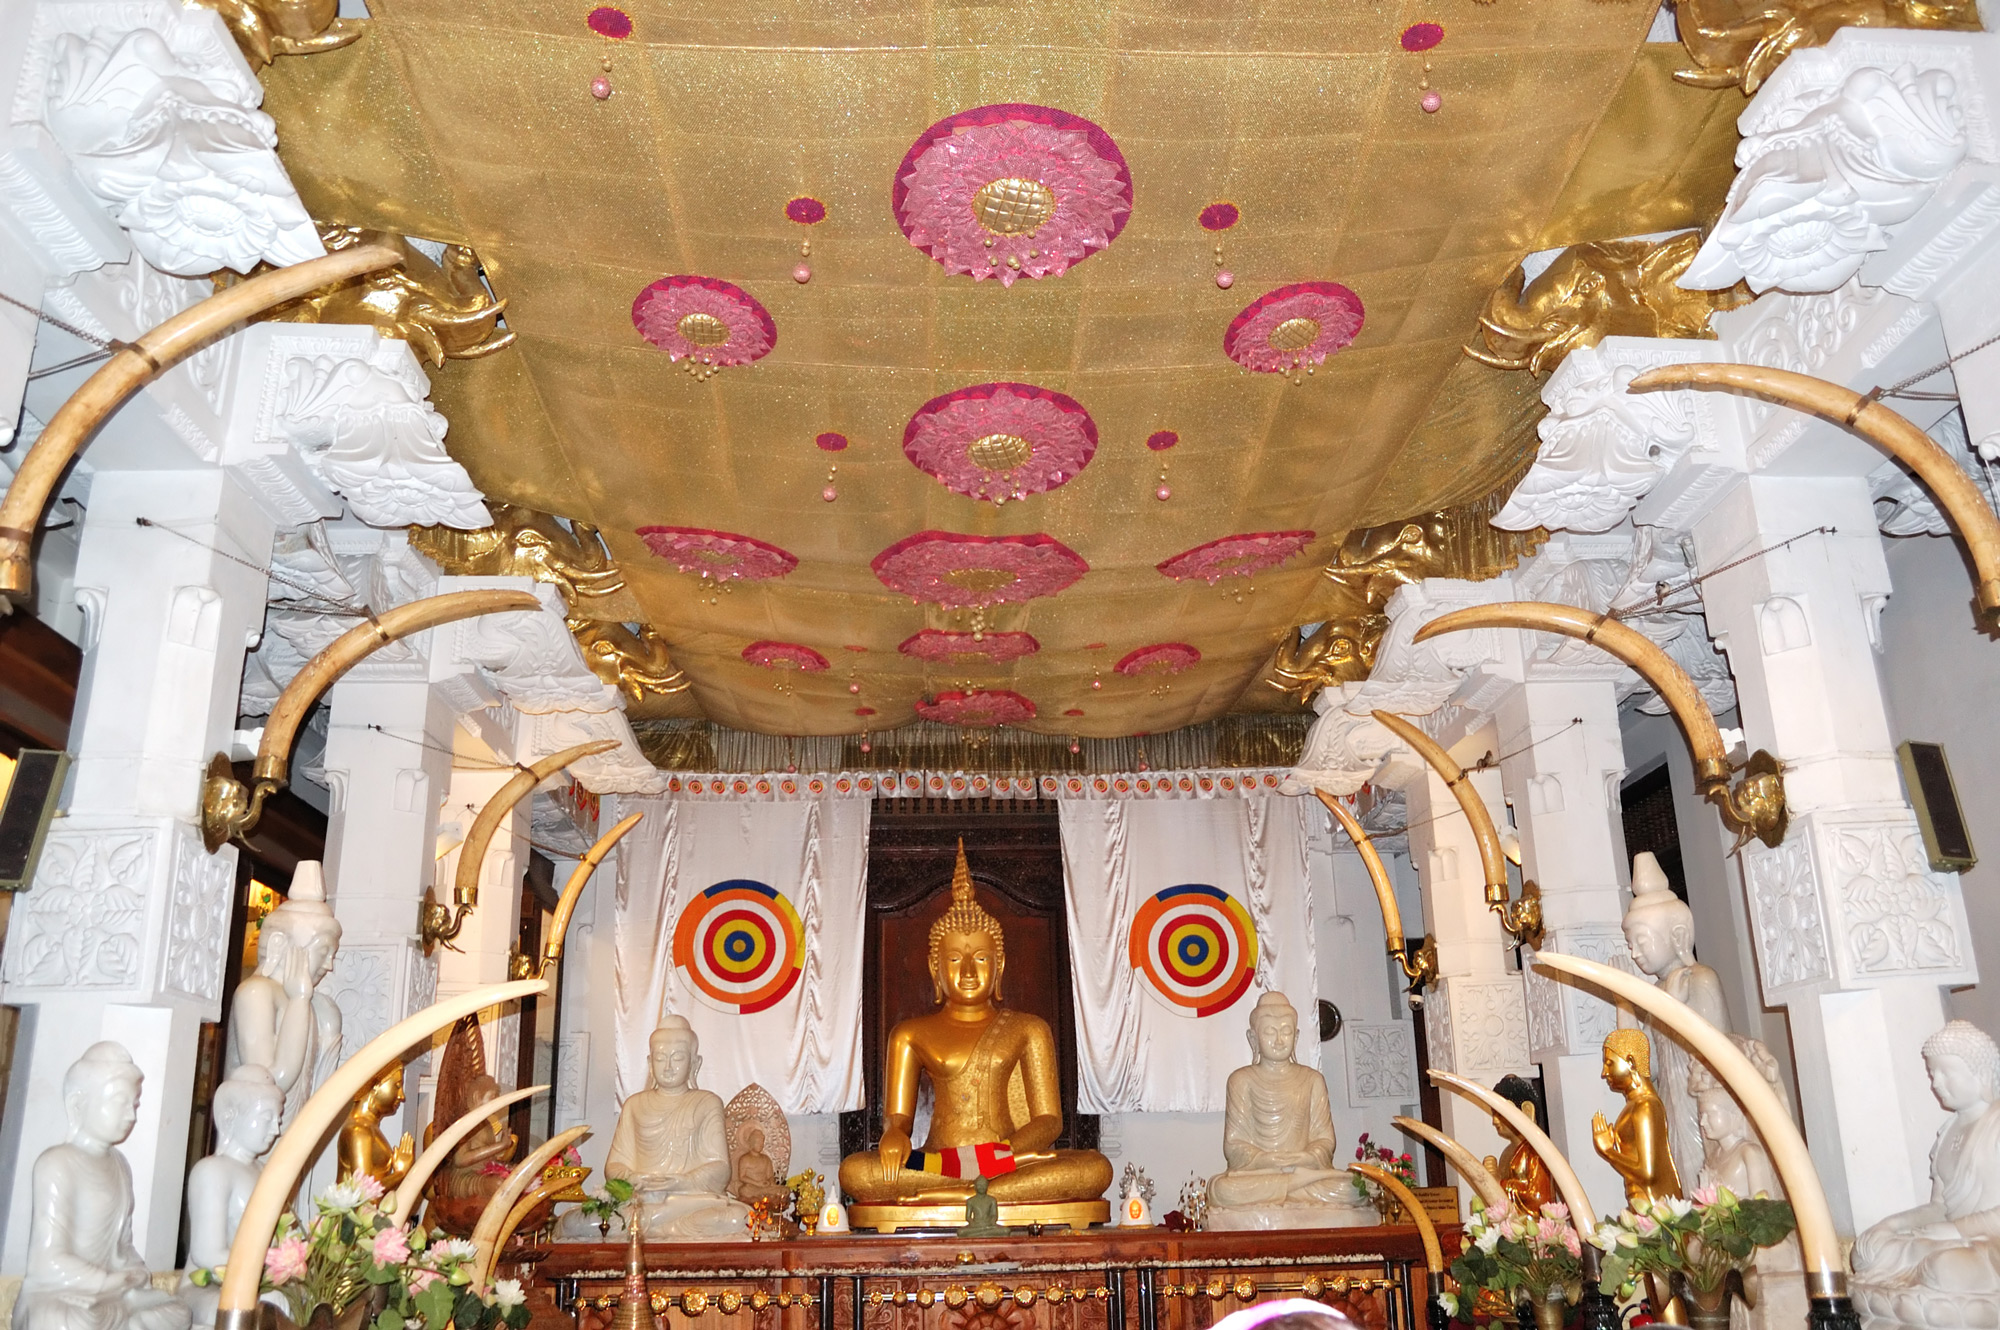 Inside Temple of the Lord Buddha's Tooth Relic, discover sri lanka